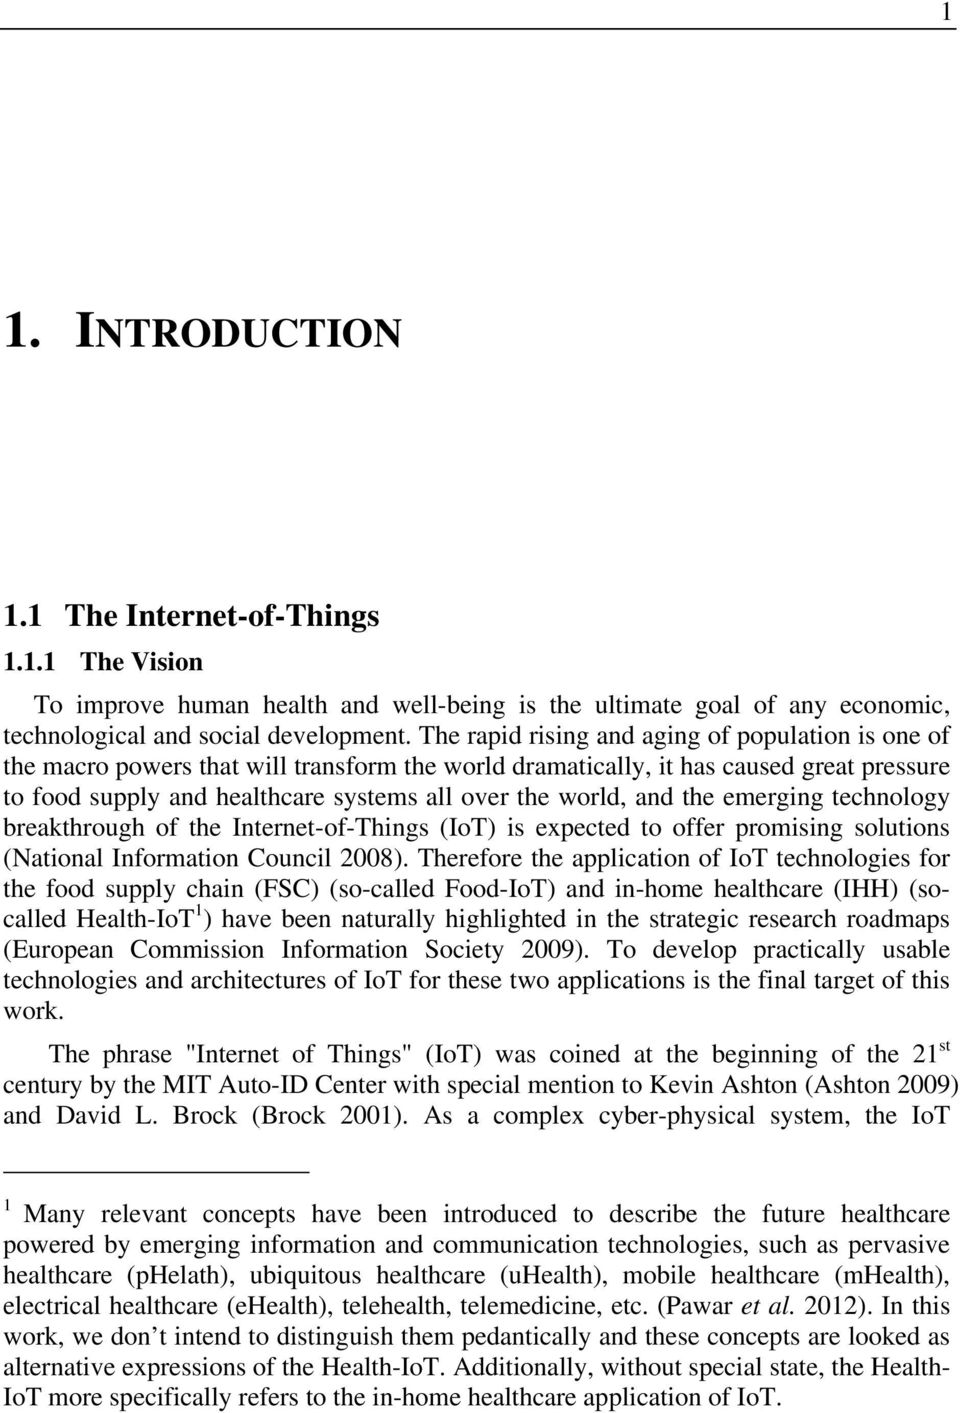 and the emerging technology breakthrough of the Internet-of-Things (IoT) is expected to offer promising solutions (National Information Council 2008).